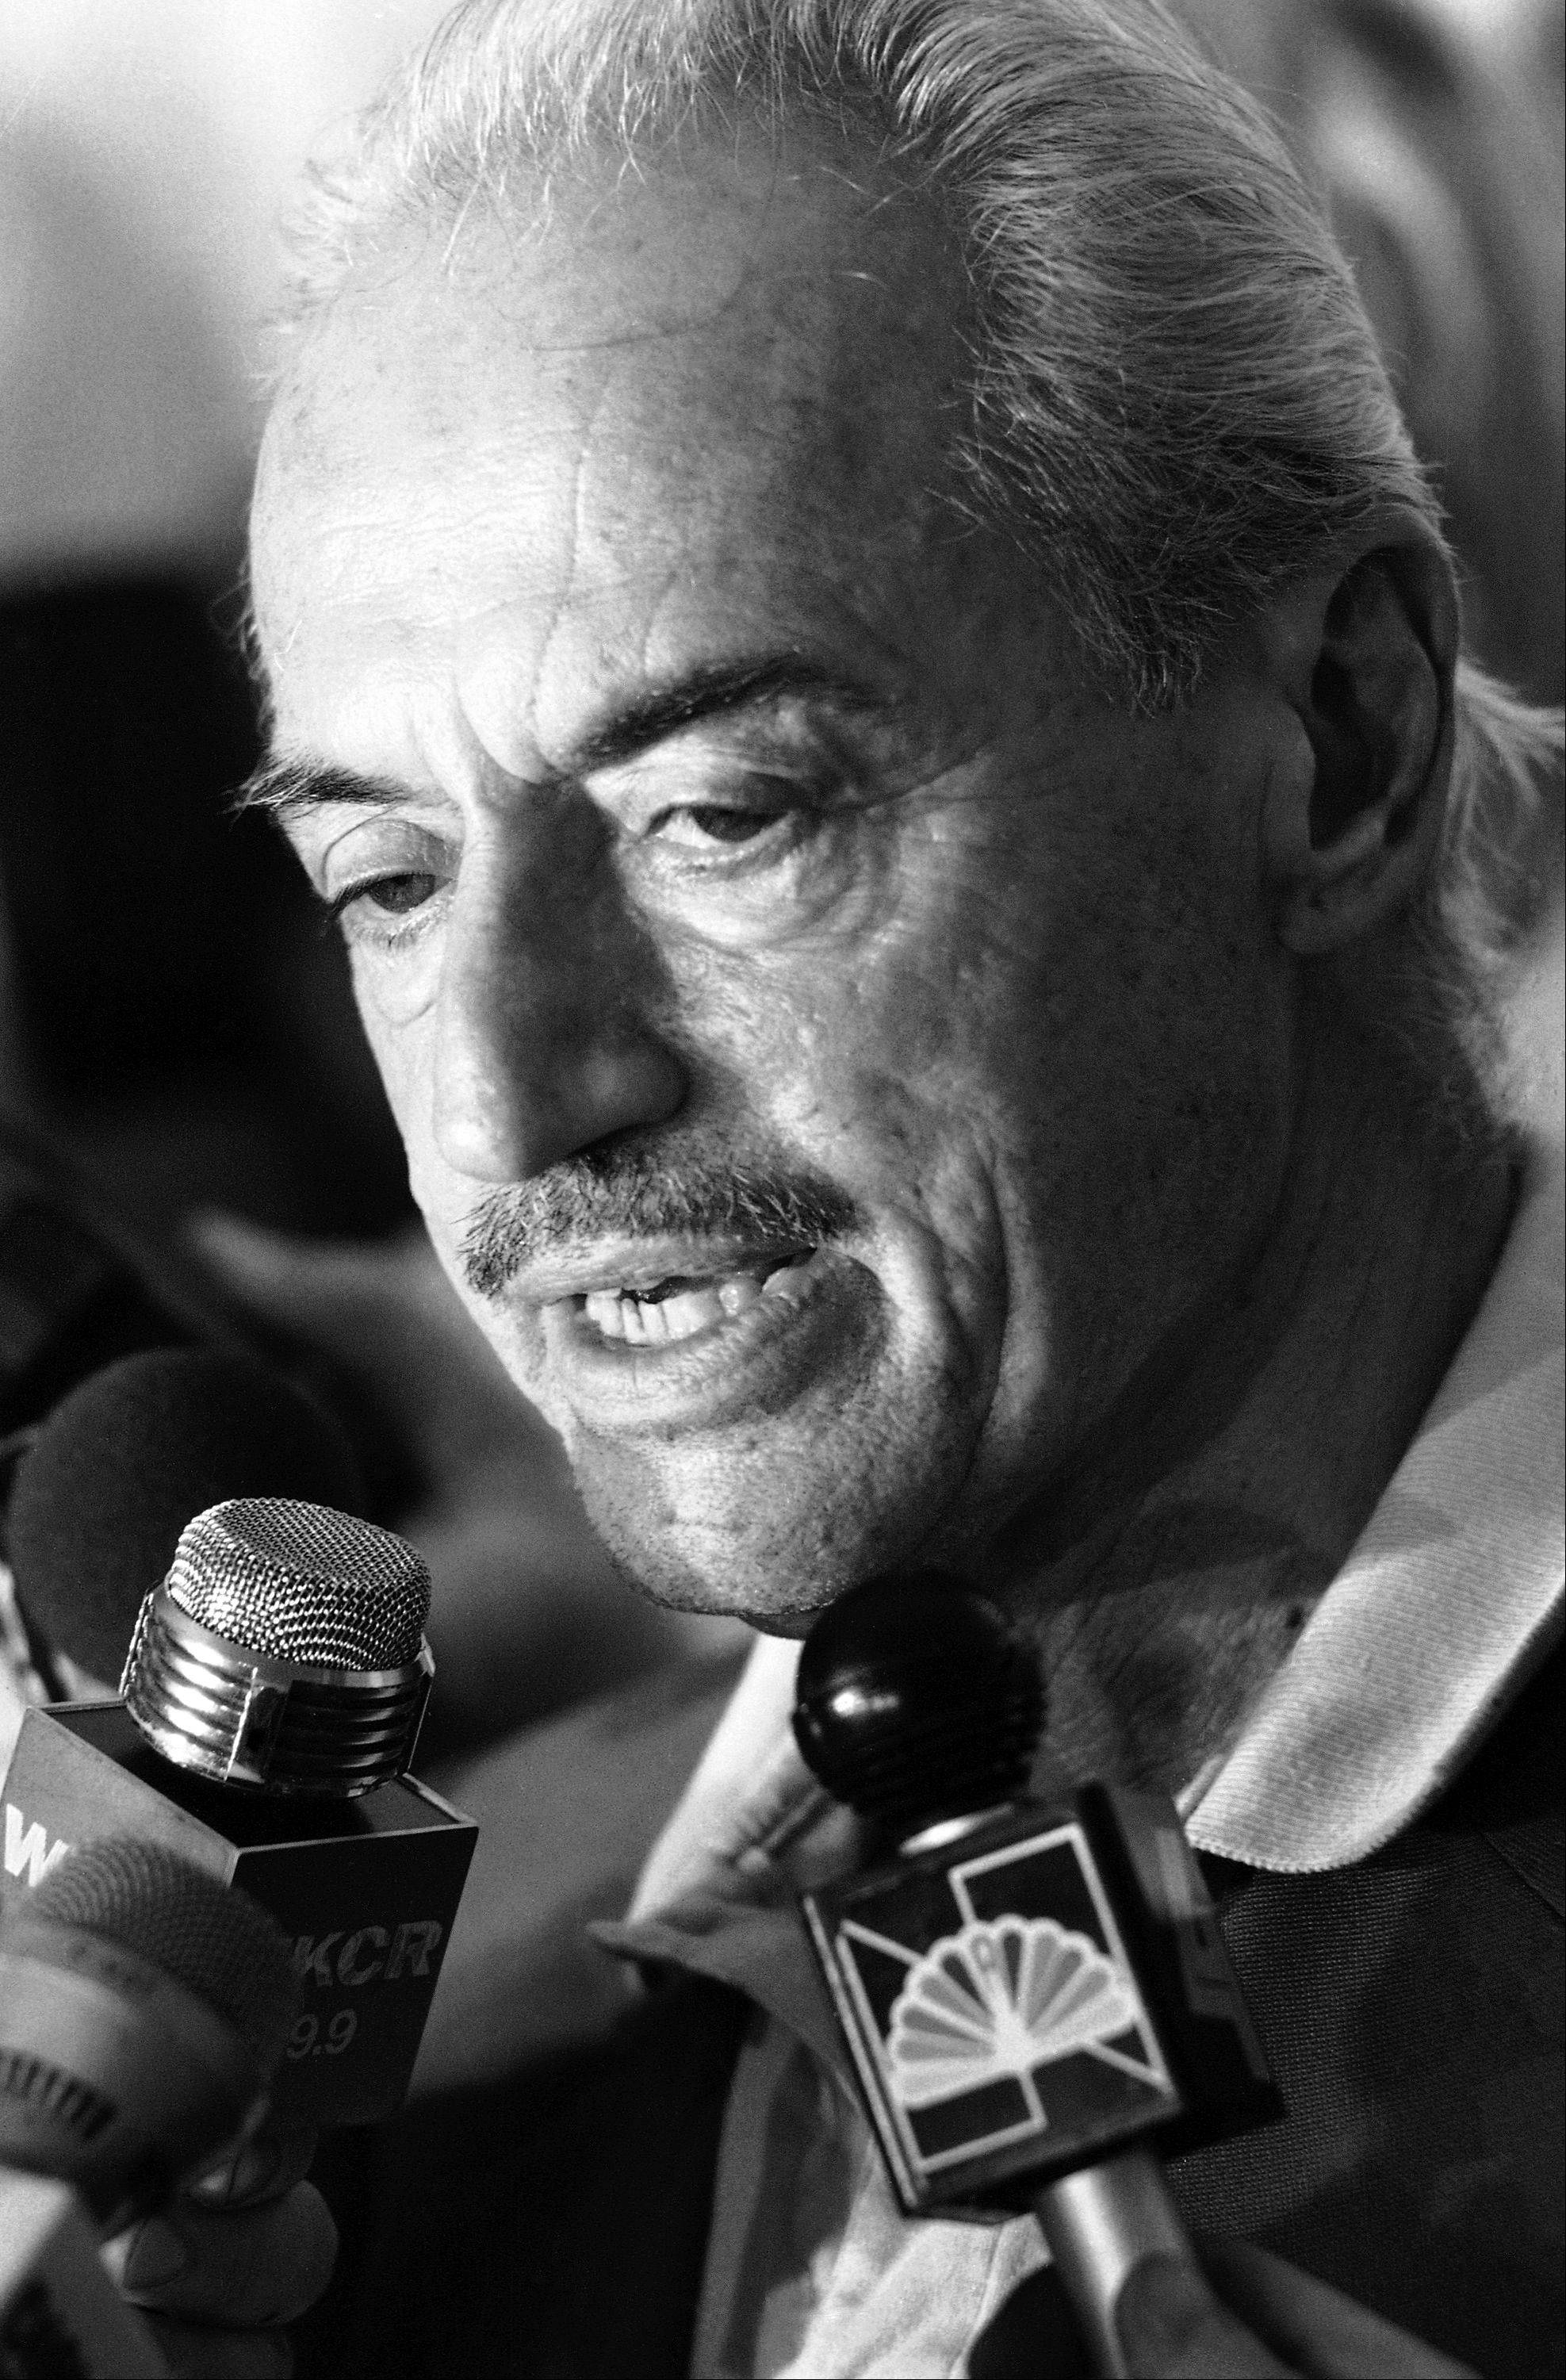 This July 31, 1981 file photo shows Marvin Miller talking to reporters at the Doral Inn in New York. Miller, the union leader who created free agency for baseball players and revolutionized professional sports with multimillion dollar contracts, died Tuesday, Nov. 27, 2012 in New York. He was 95.